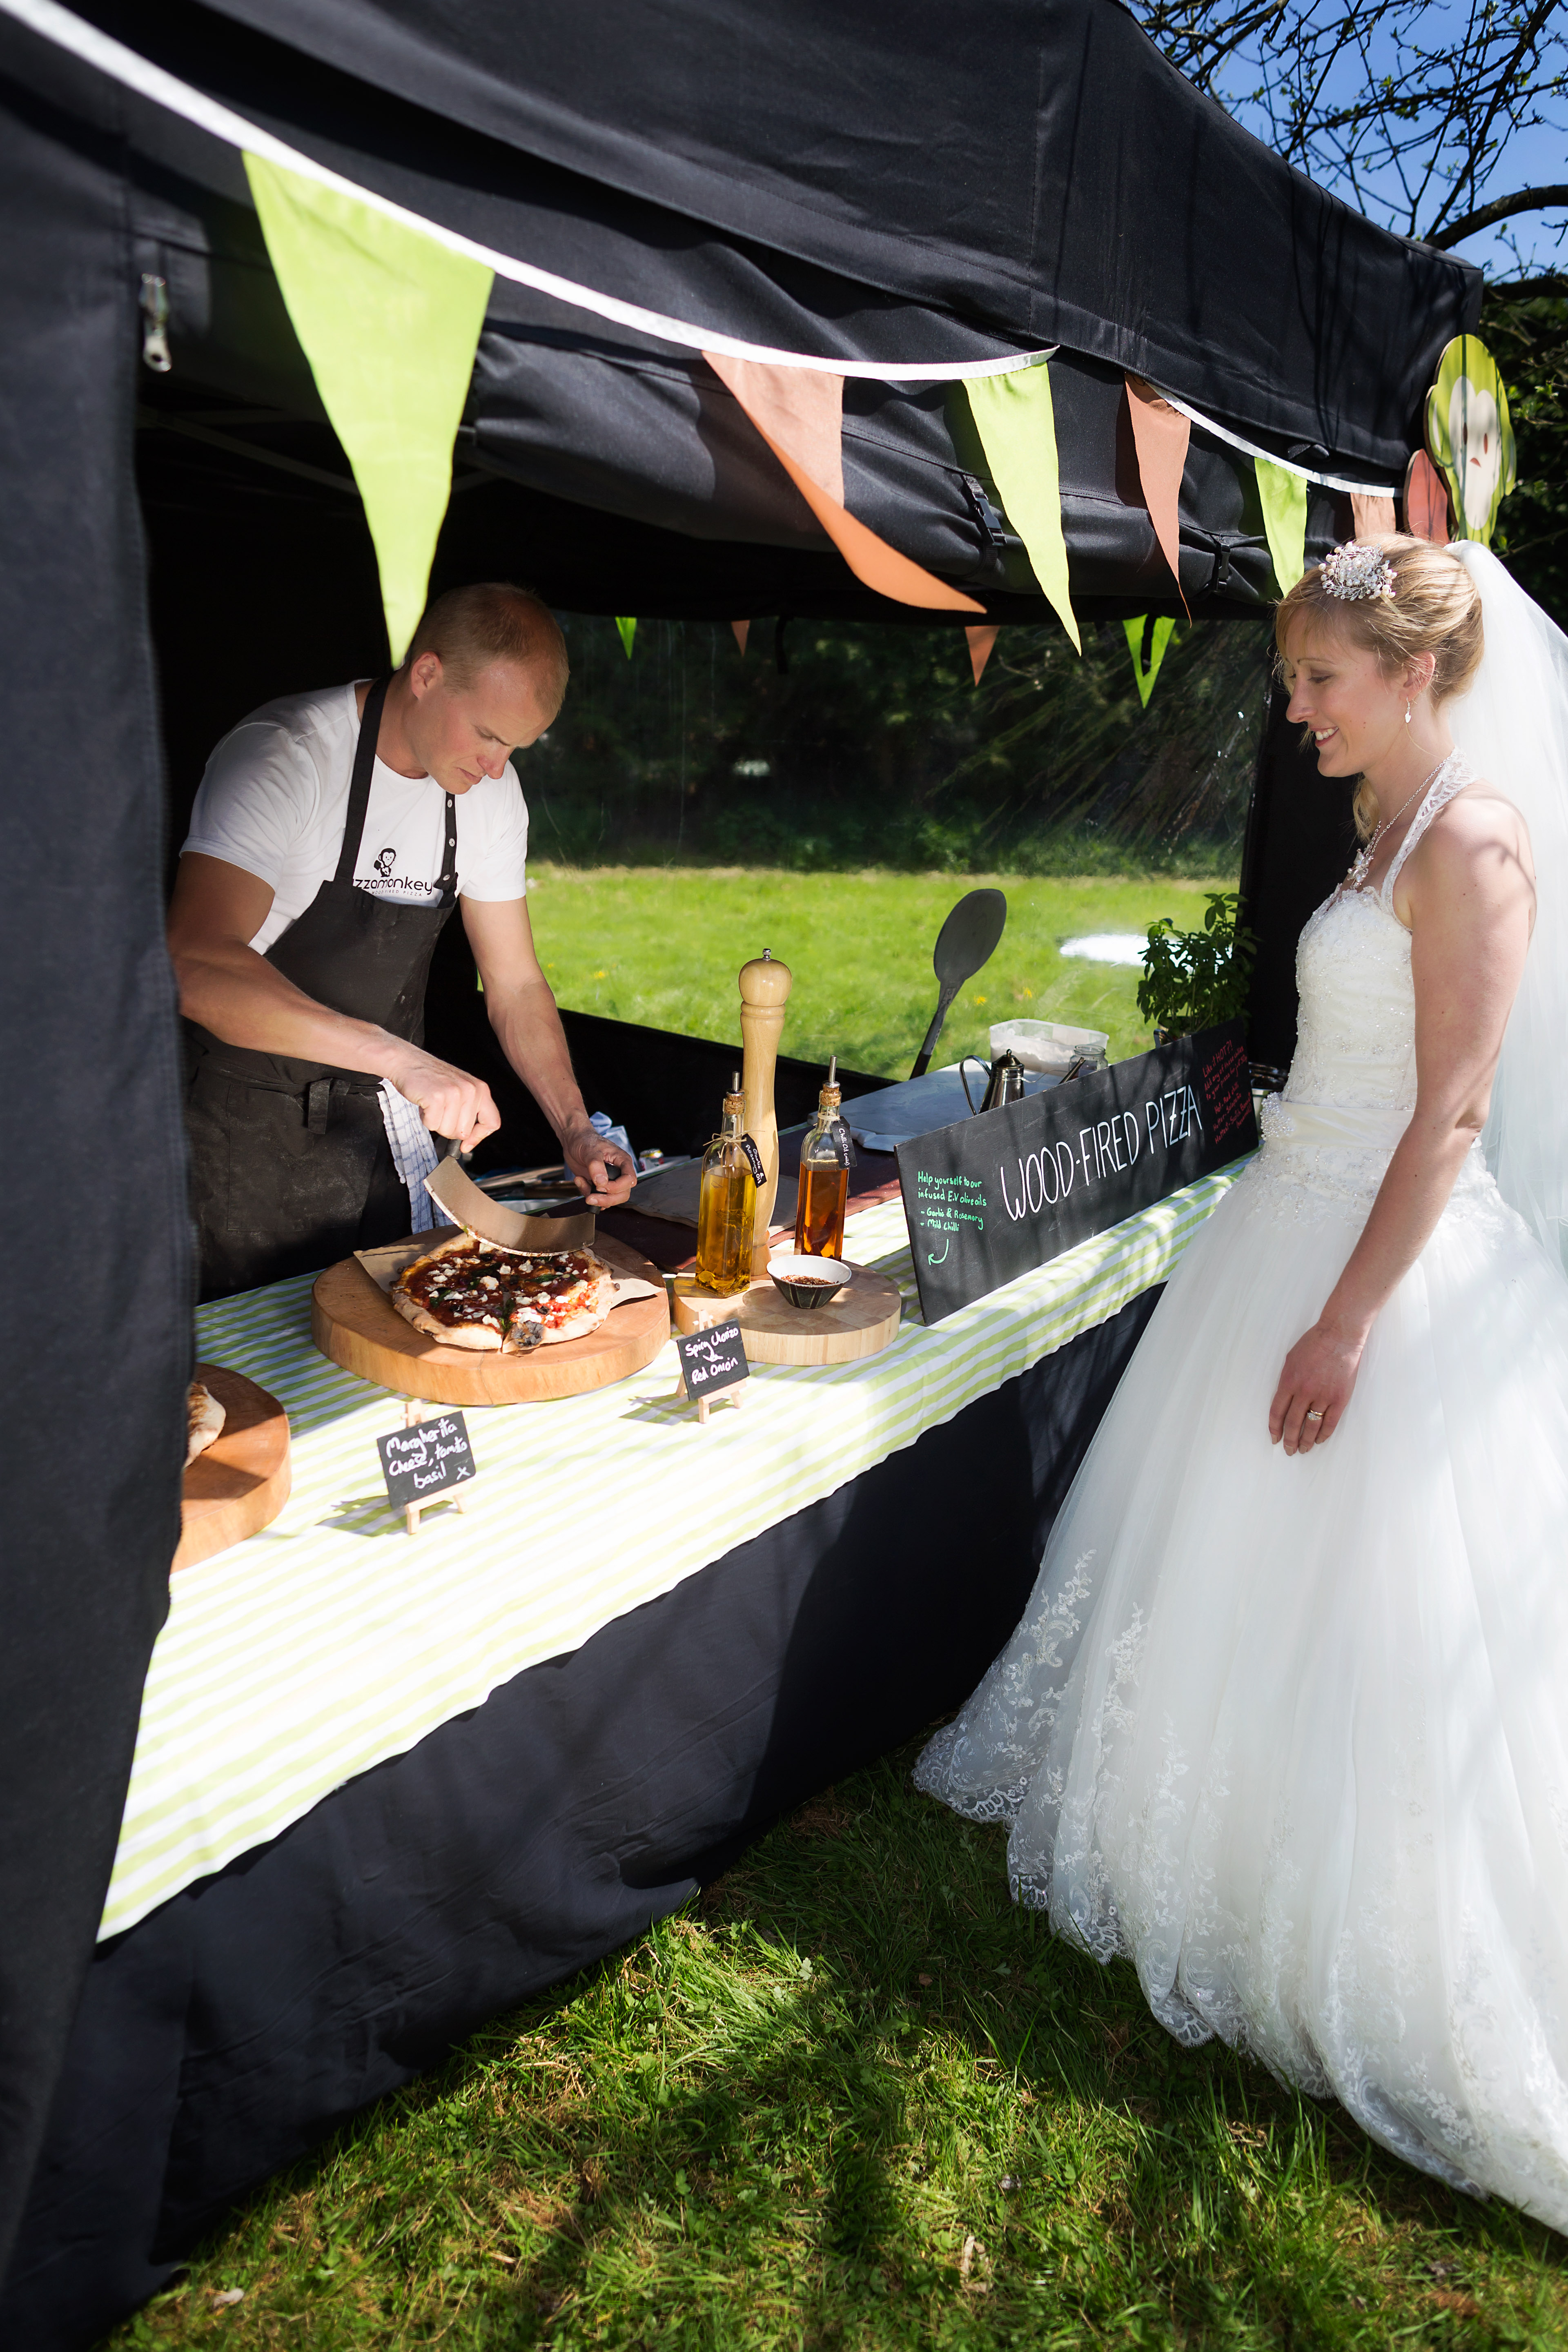 pizza and salads casual dining perfect for and outdoor wedding